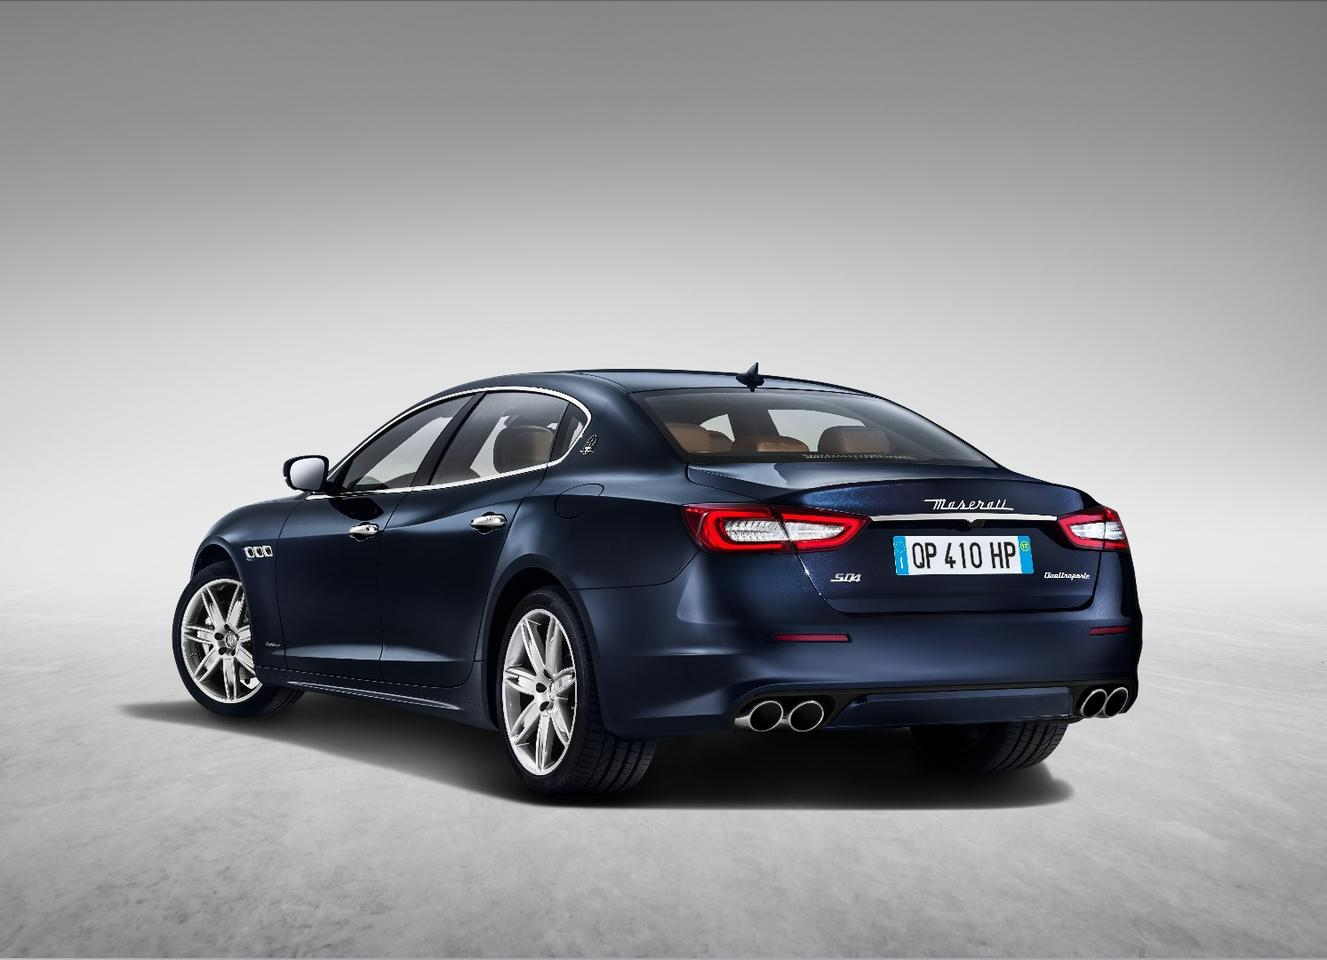 The new Maserati Quattroporte has been subtly restyled outside